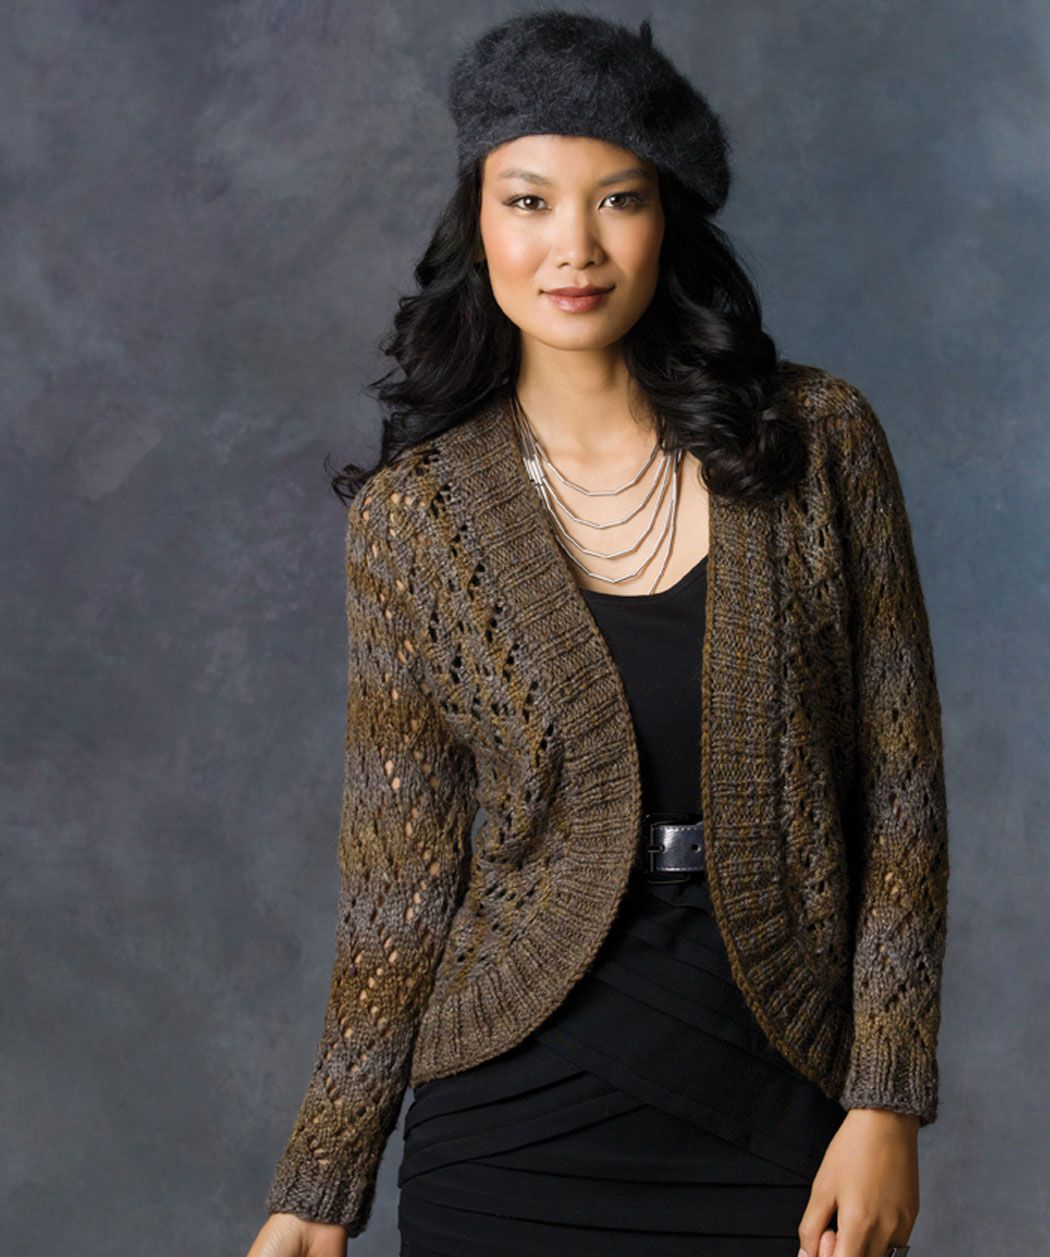 Open front shrug free pattern knitworthy pinterest knit open front shrug free pattern bankloansurffo Image collections